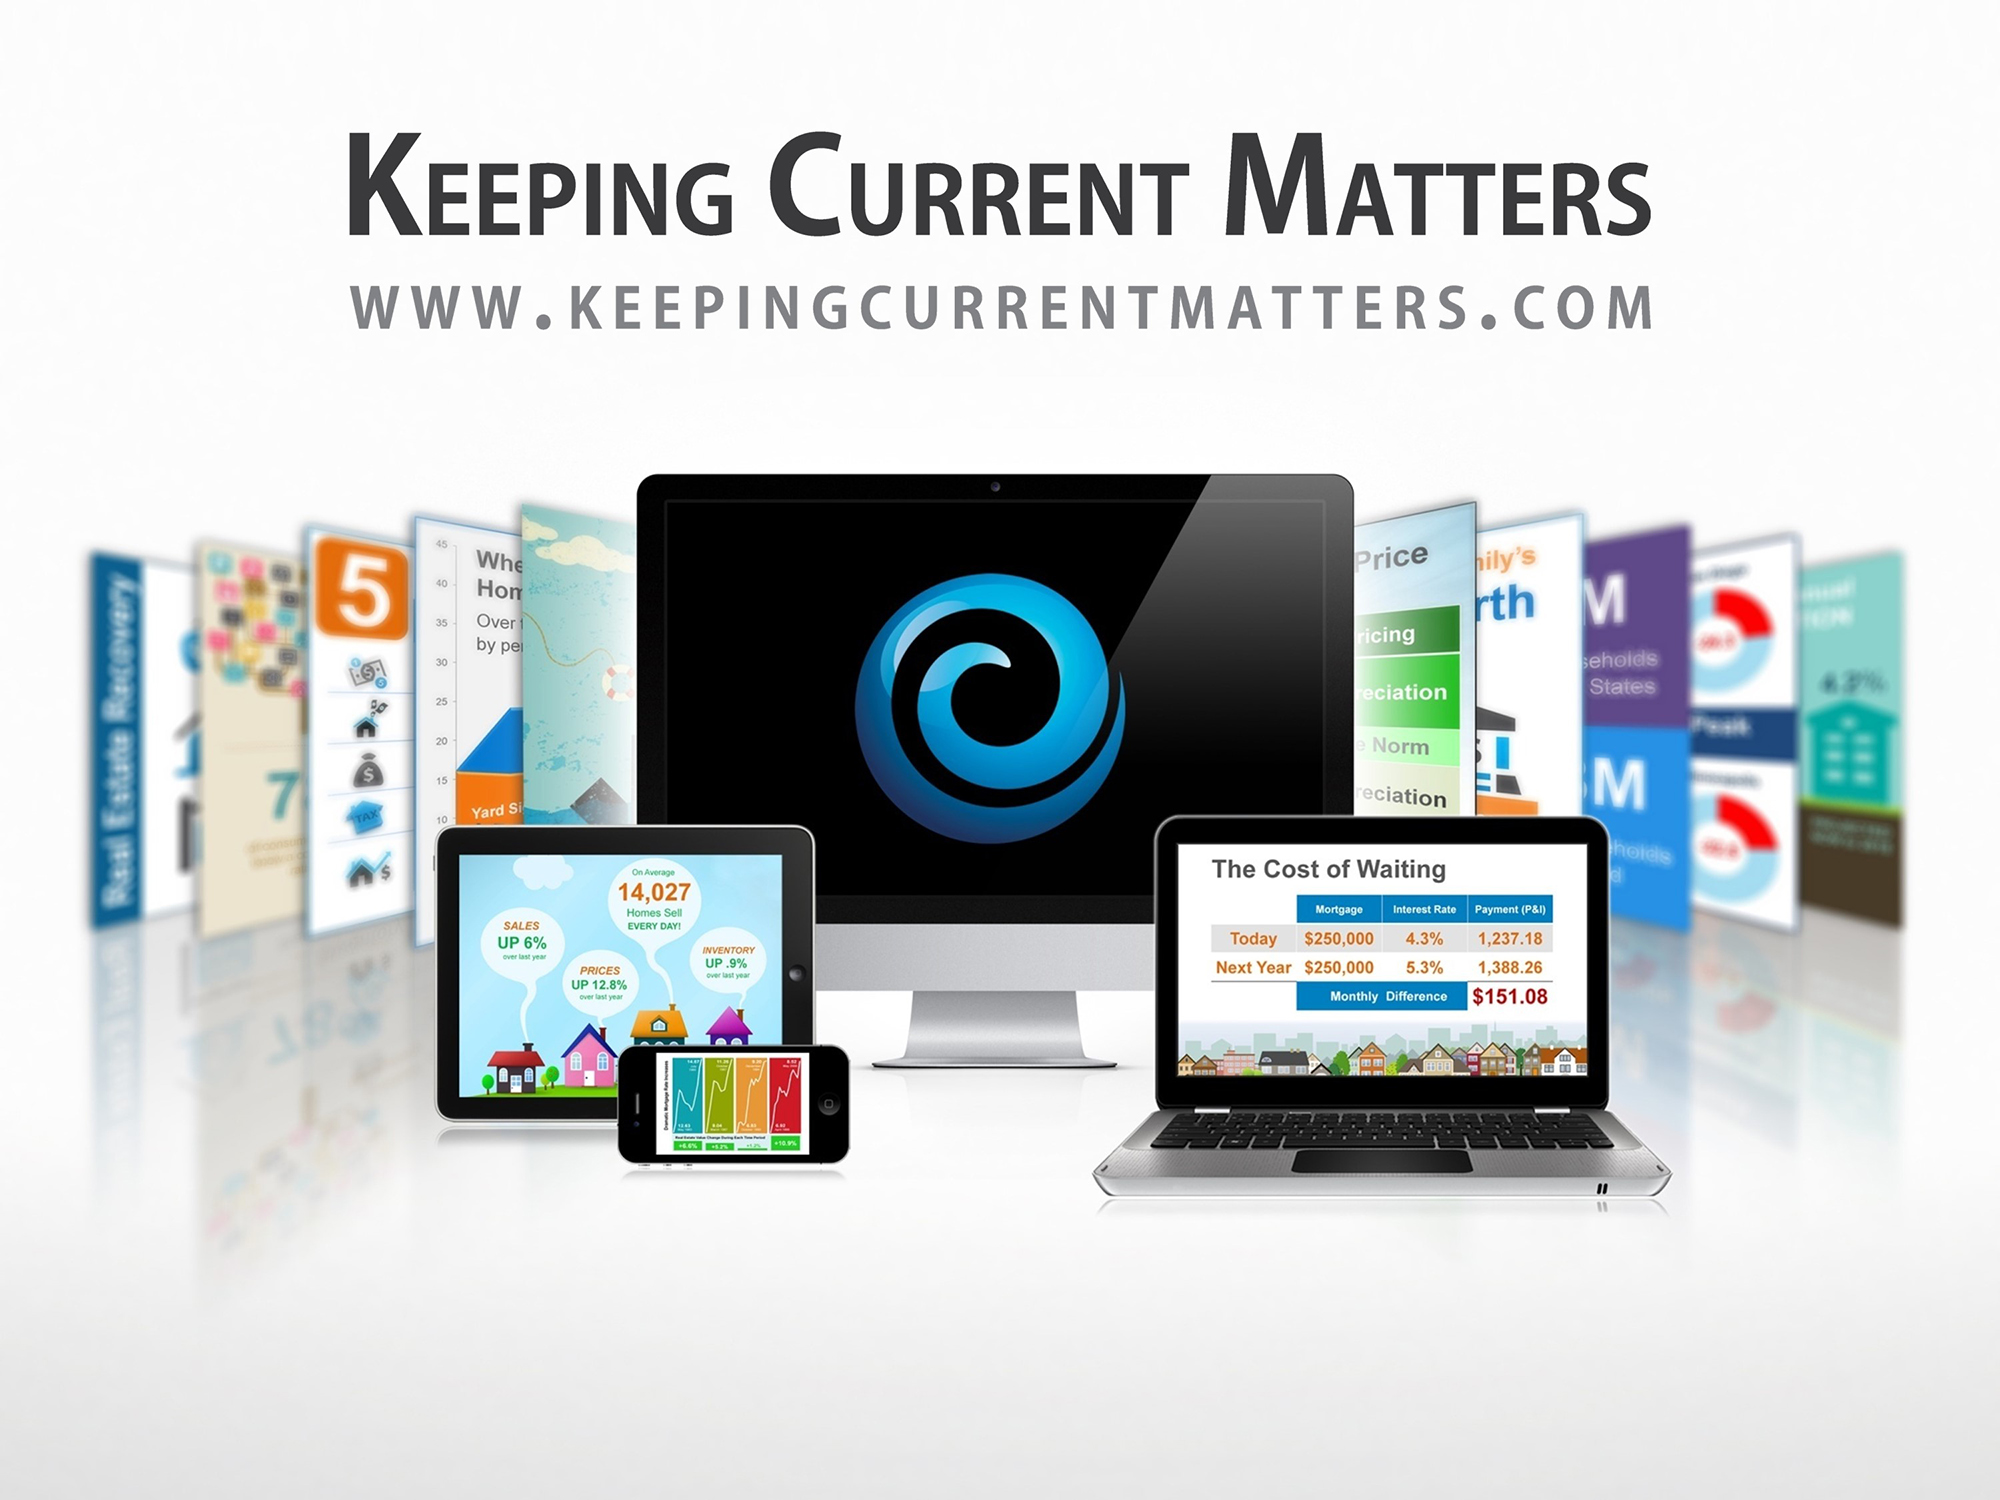 Start Your Free 14-Day Trial | Keeping Current Matters